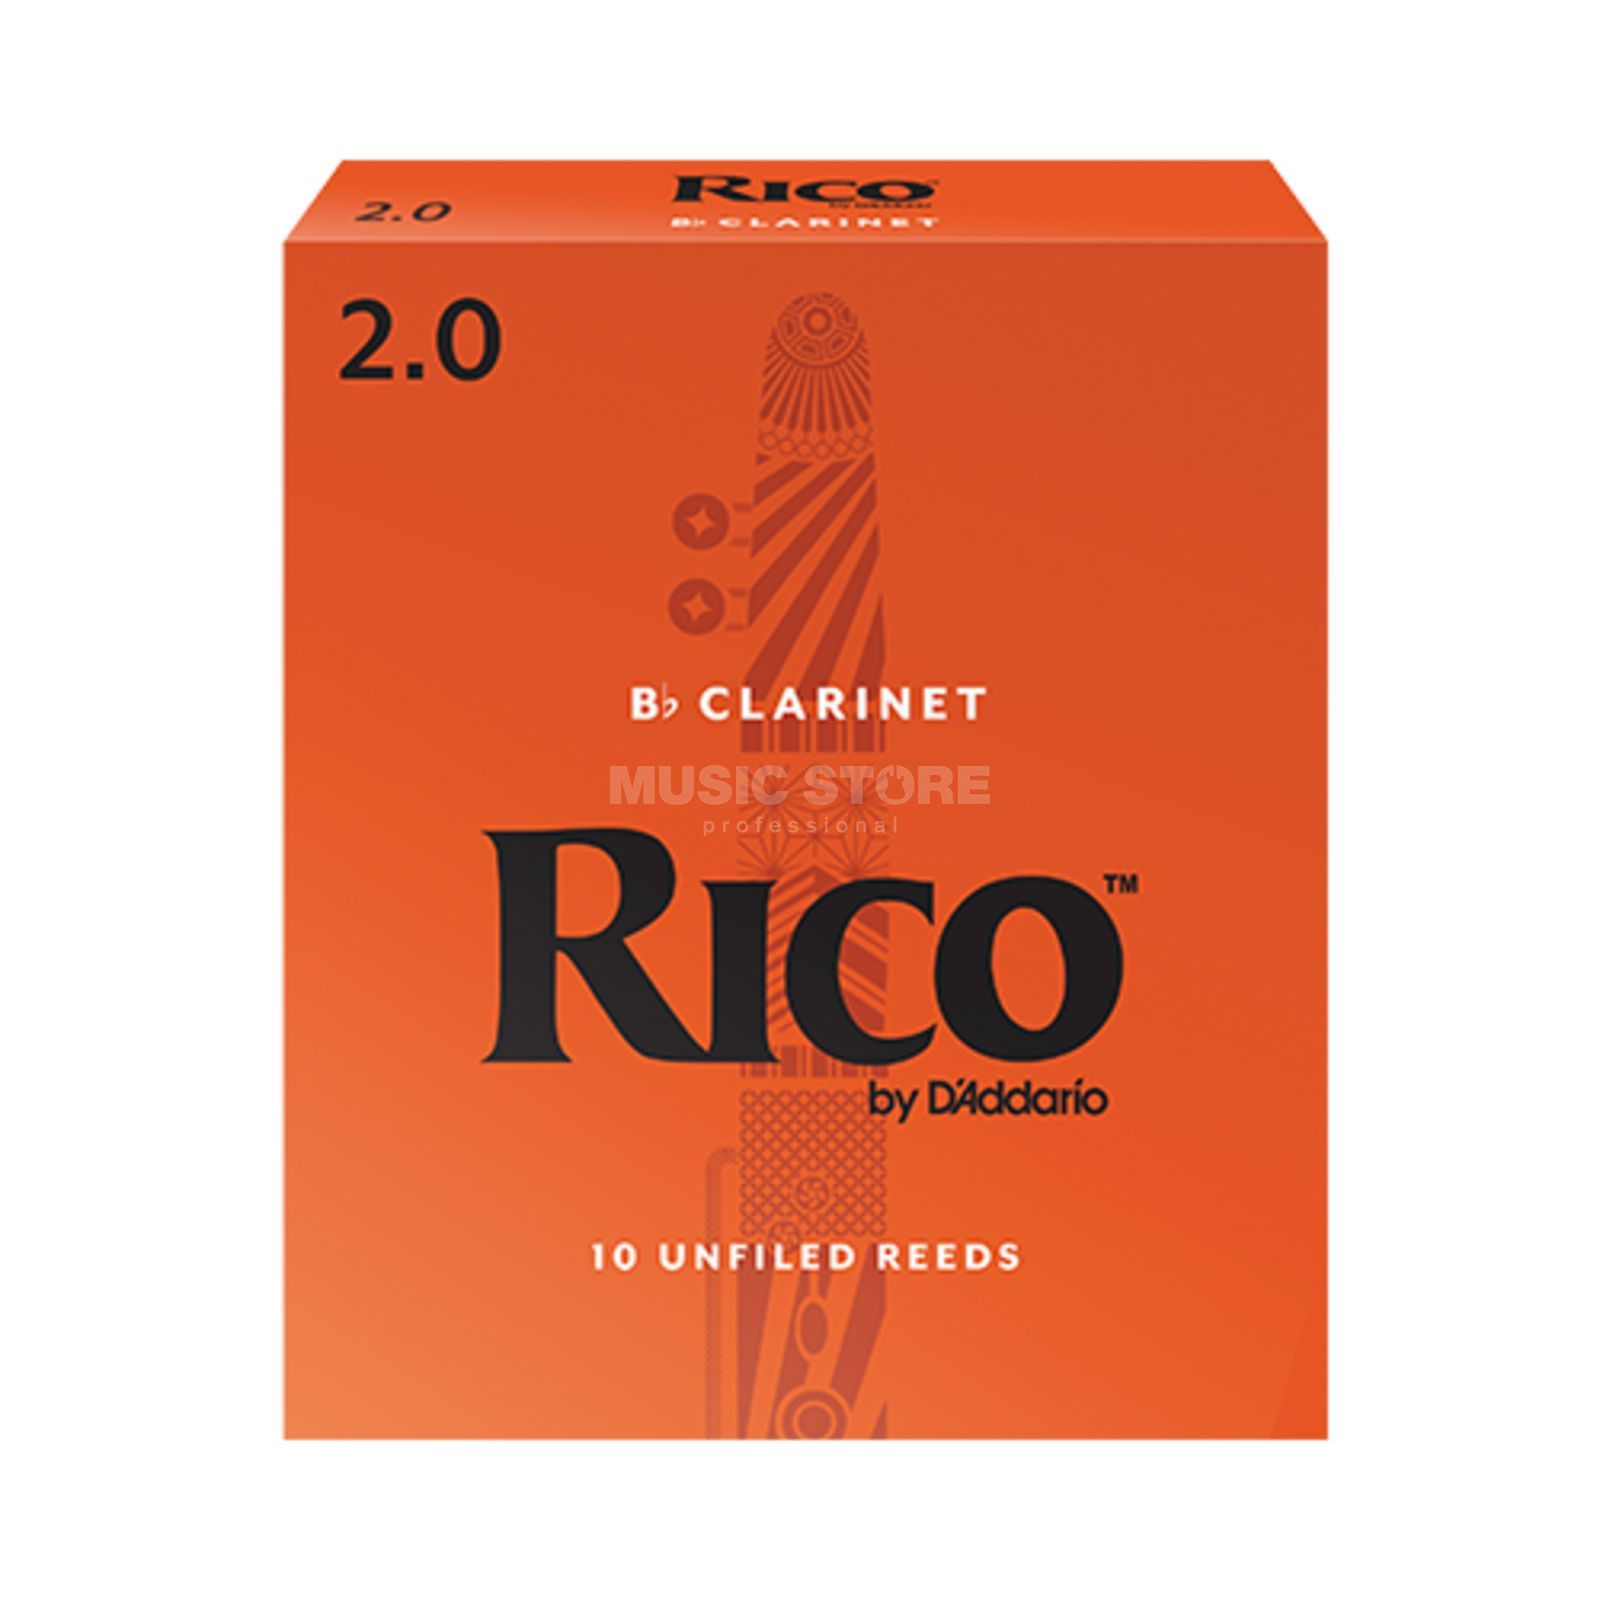 D'Addario Rico Bb-Clarinet Reed 2 Box of 10 Product Image